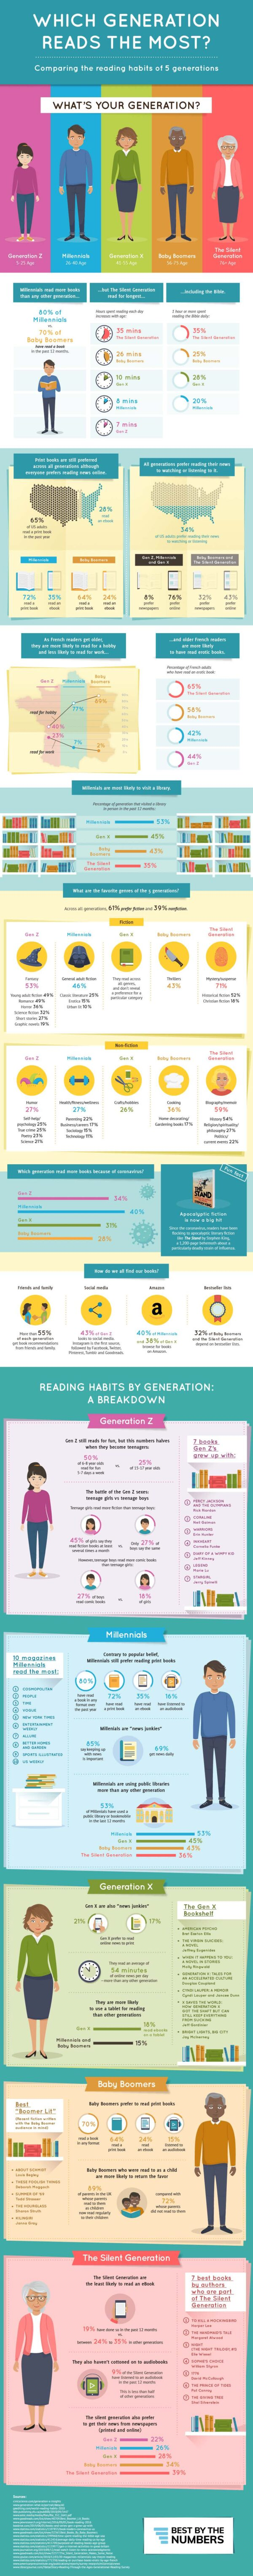 Which generation reads the most infographic